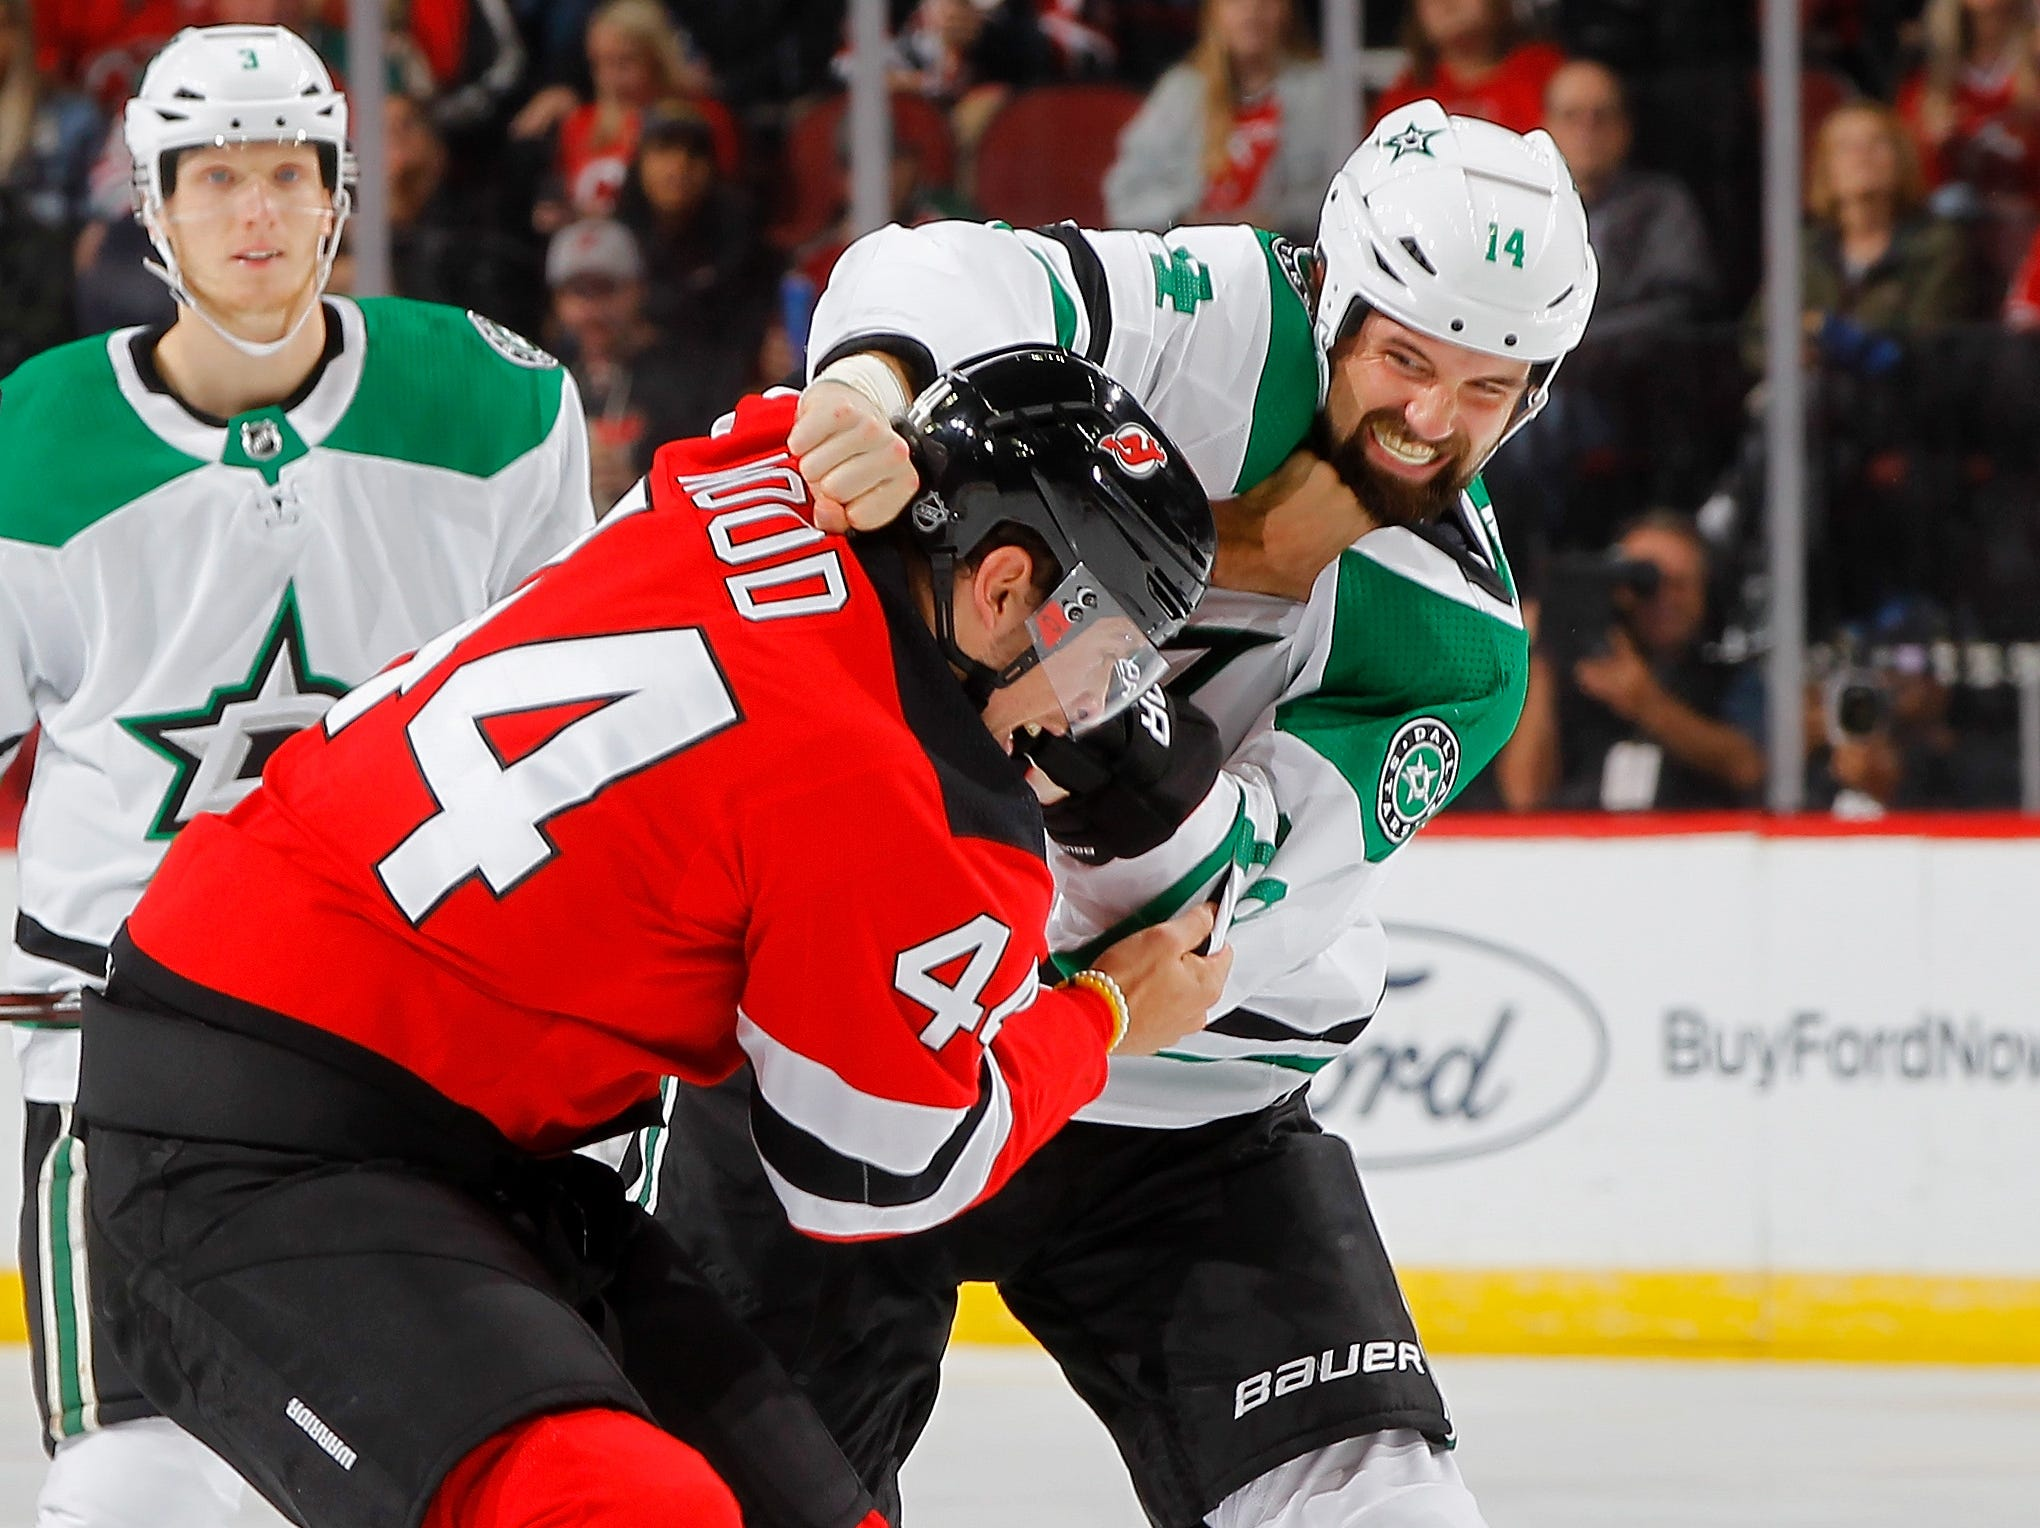 Oct. 16: The Devils' Miles Wood vs. the Stars' Jamie Benn.